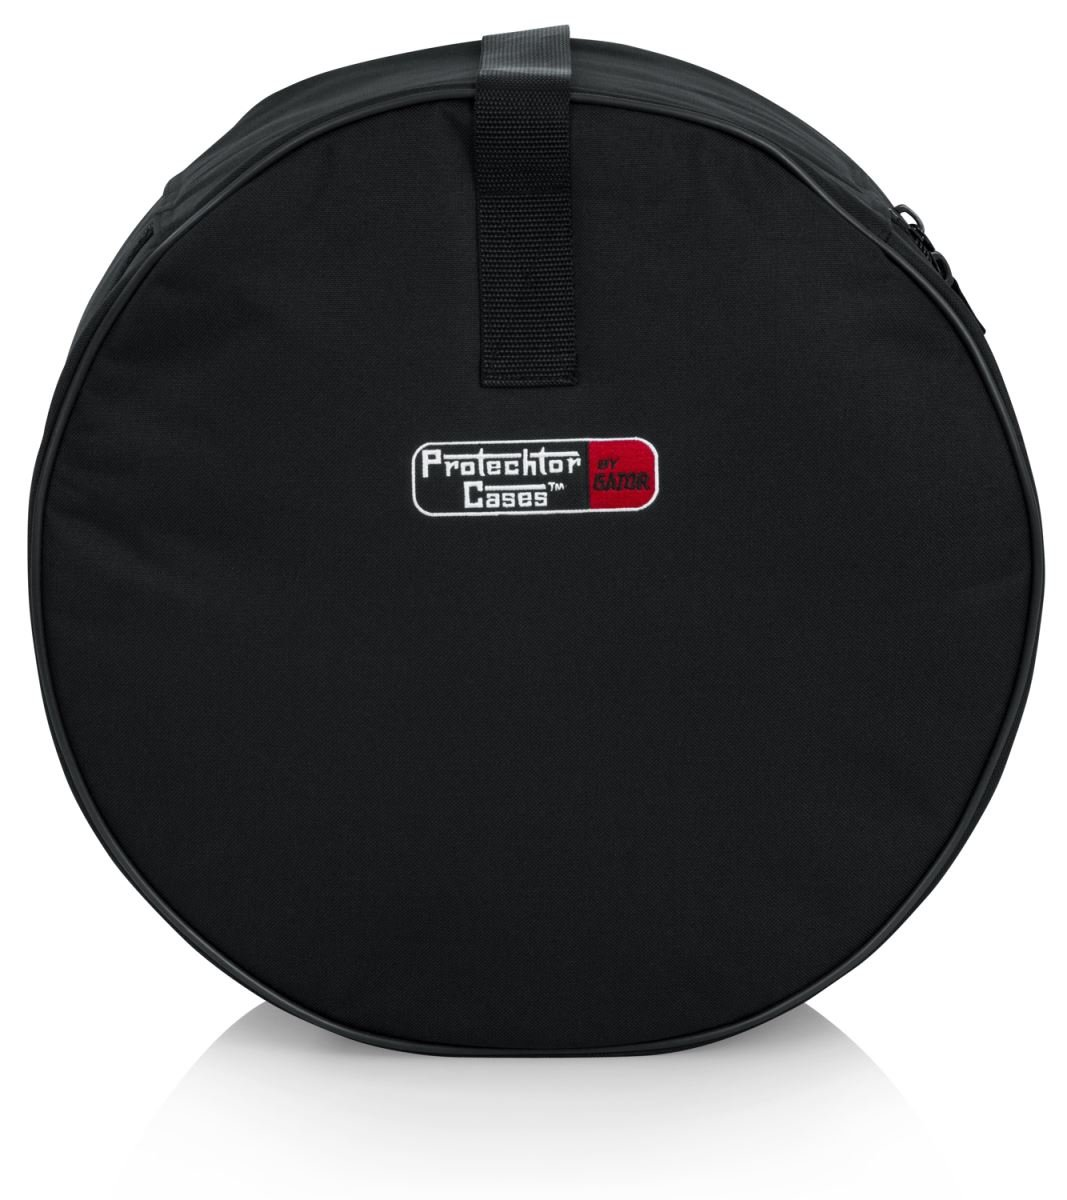 Gator Cases Protechtor Series Snare Drum Gig Bag; Fits 13 x 5.5 Snares GP-1305.5SD